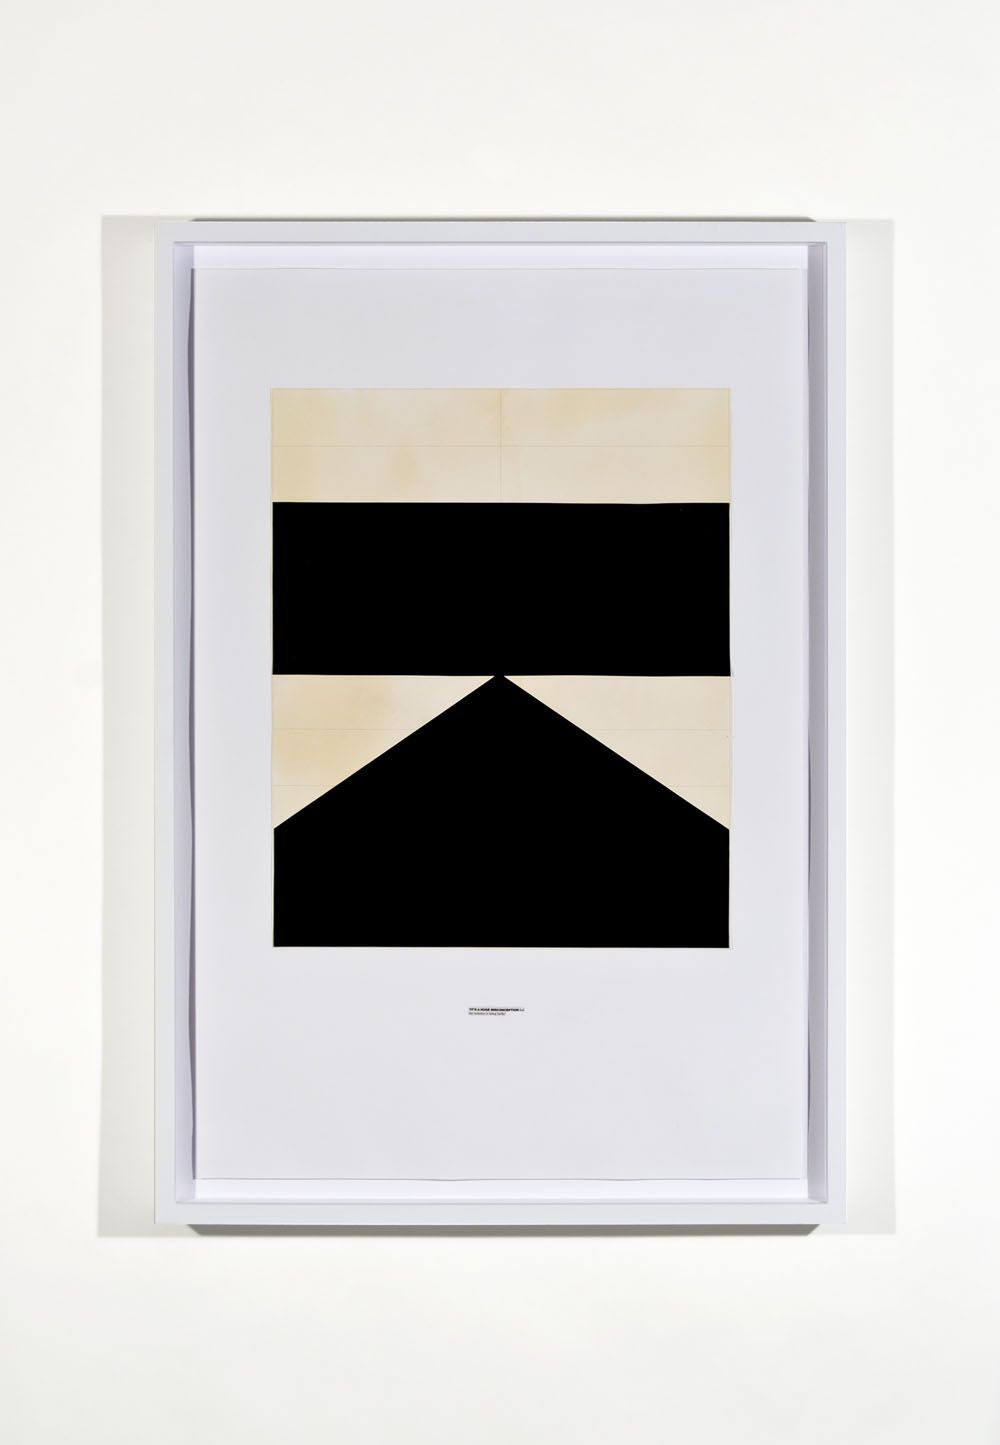 SKYLAR FEIN Suprematism: It's a Huge Misconception that the Industry is Doing Badly, 2011